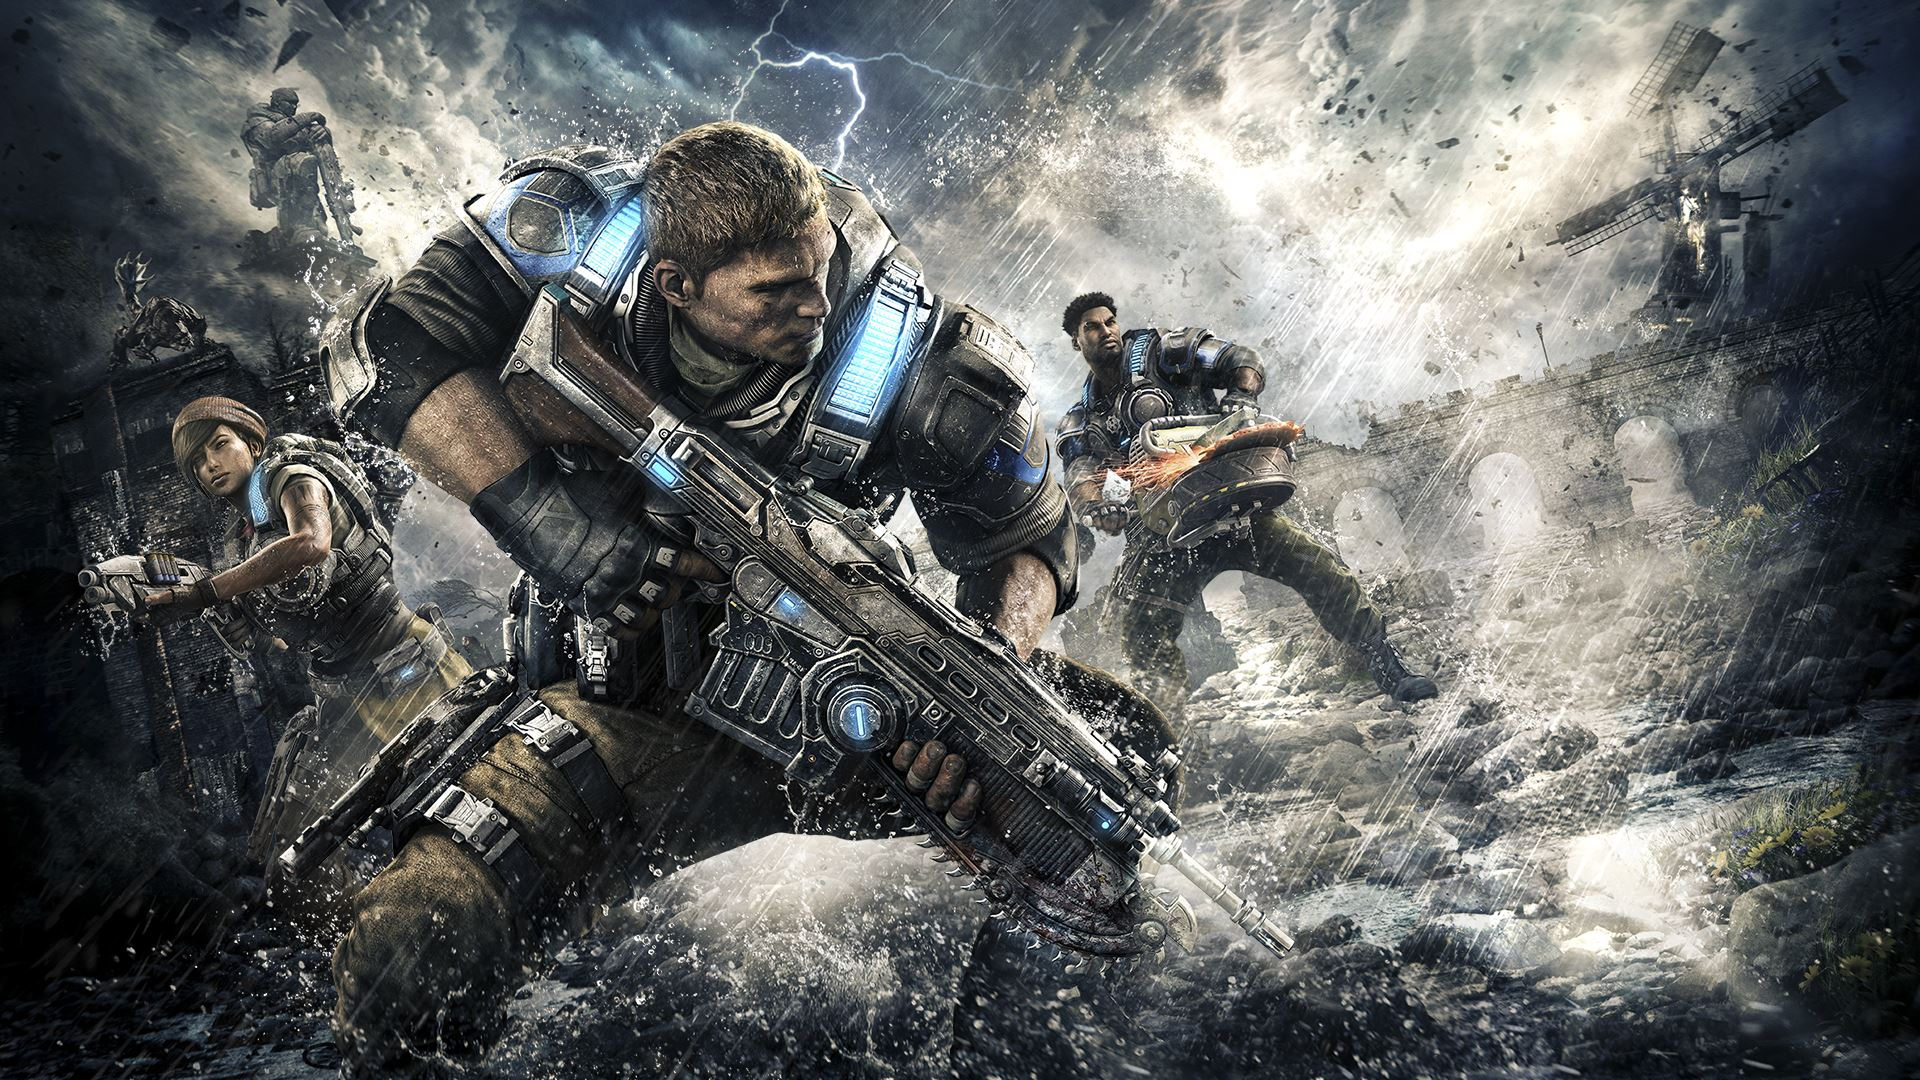 Gears Of War 4 Has A Stack Of Exclusives On PC image 4